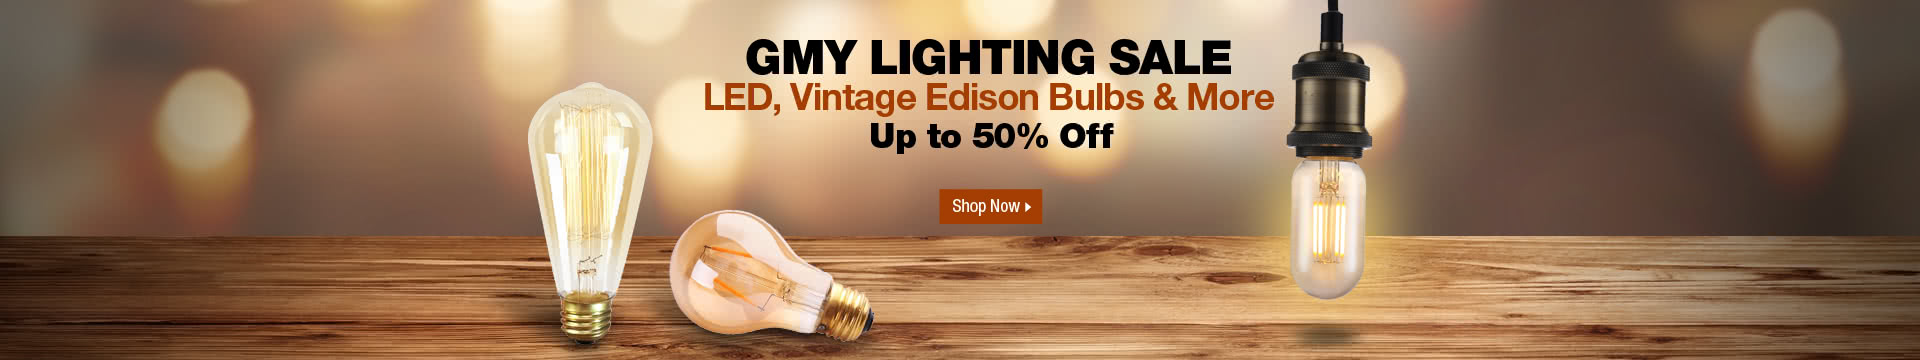 GMY Lighting Sale